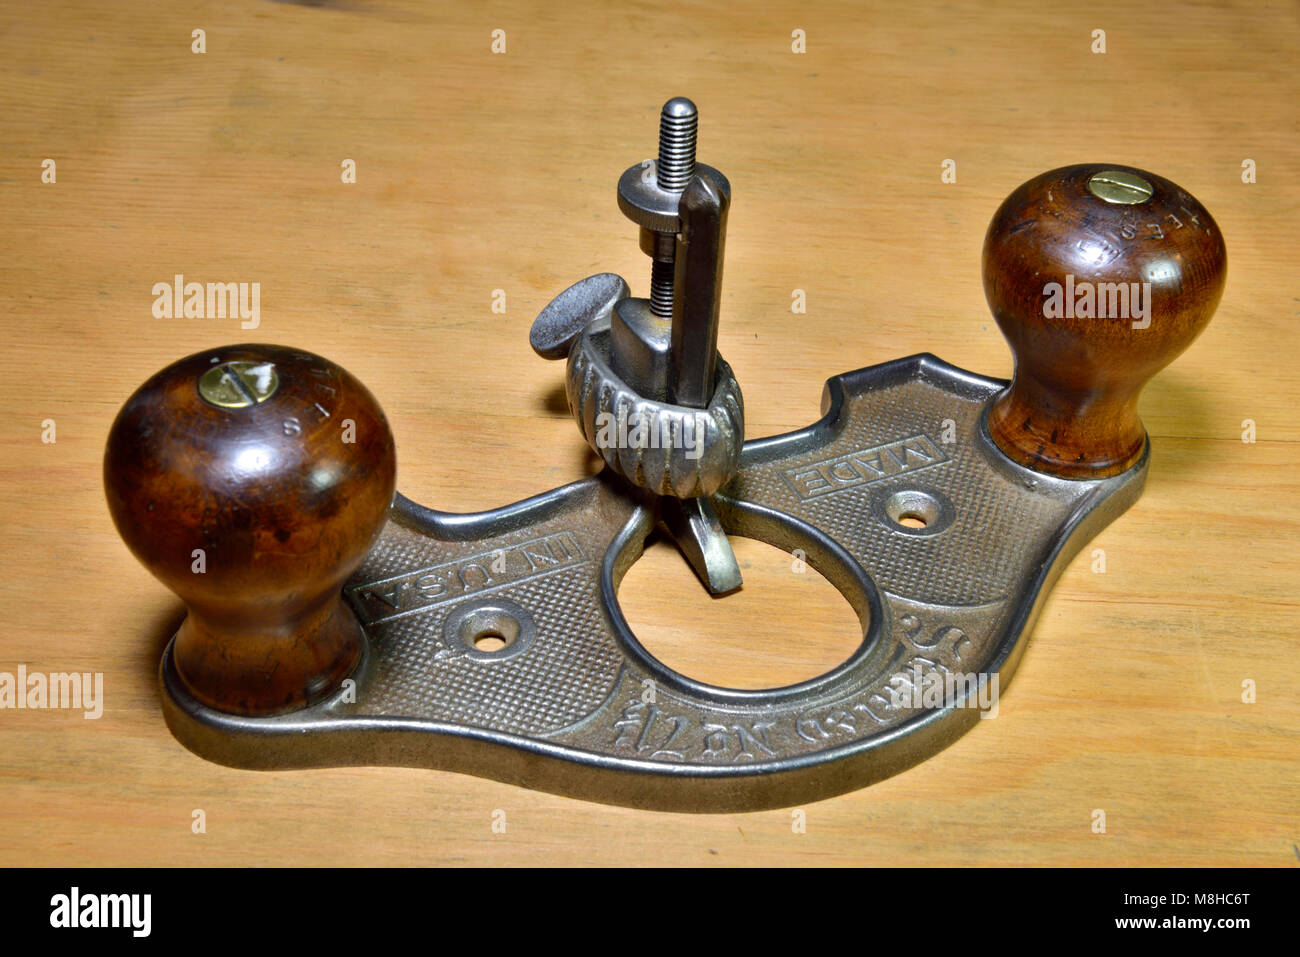 Stanley Woodworking Closed Throat Hand Router Plane 70 1 2